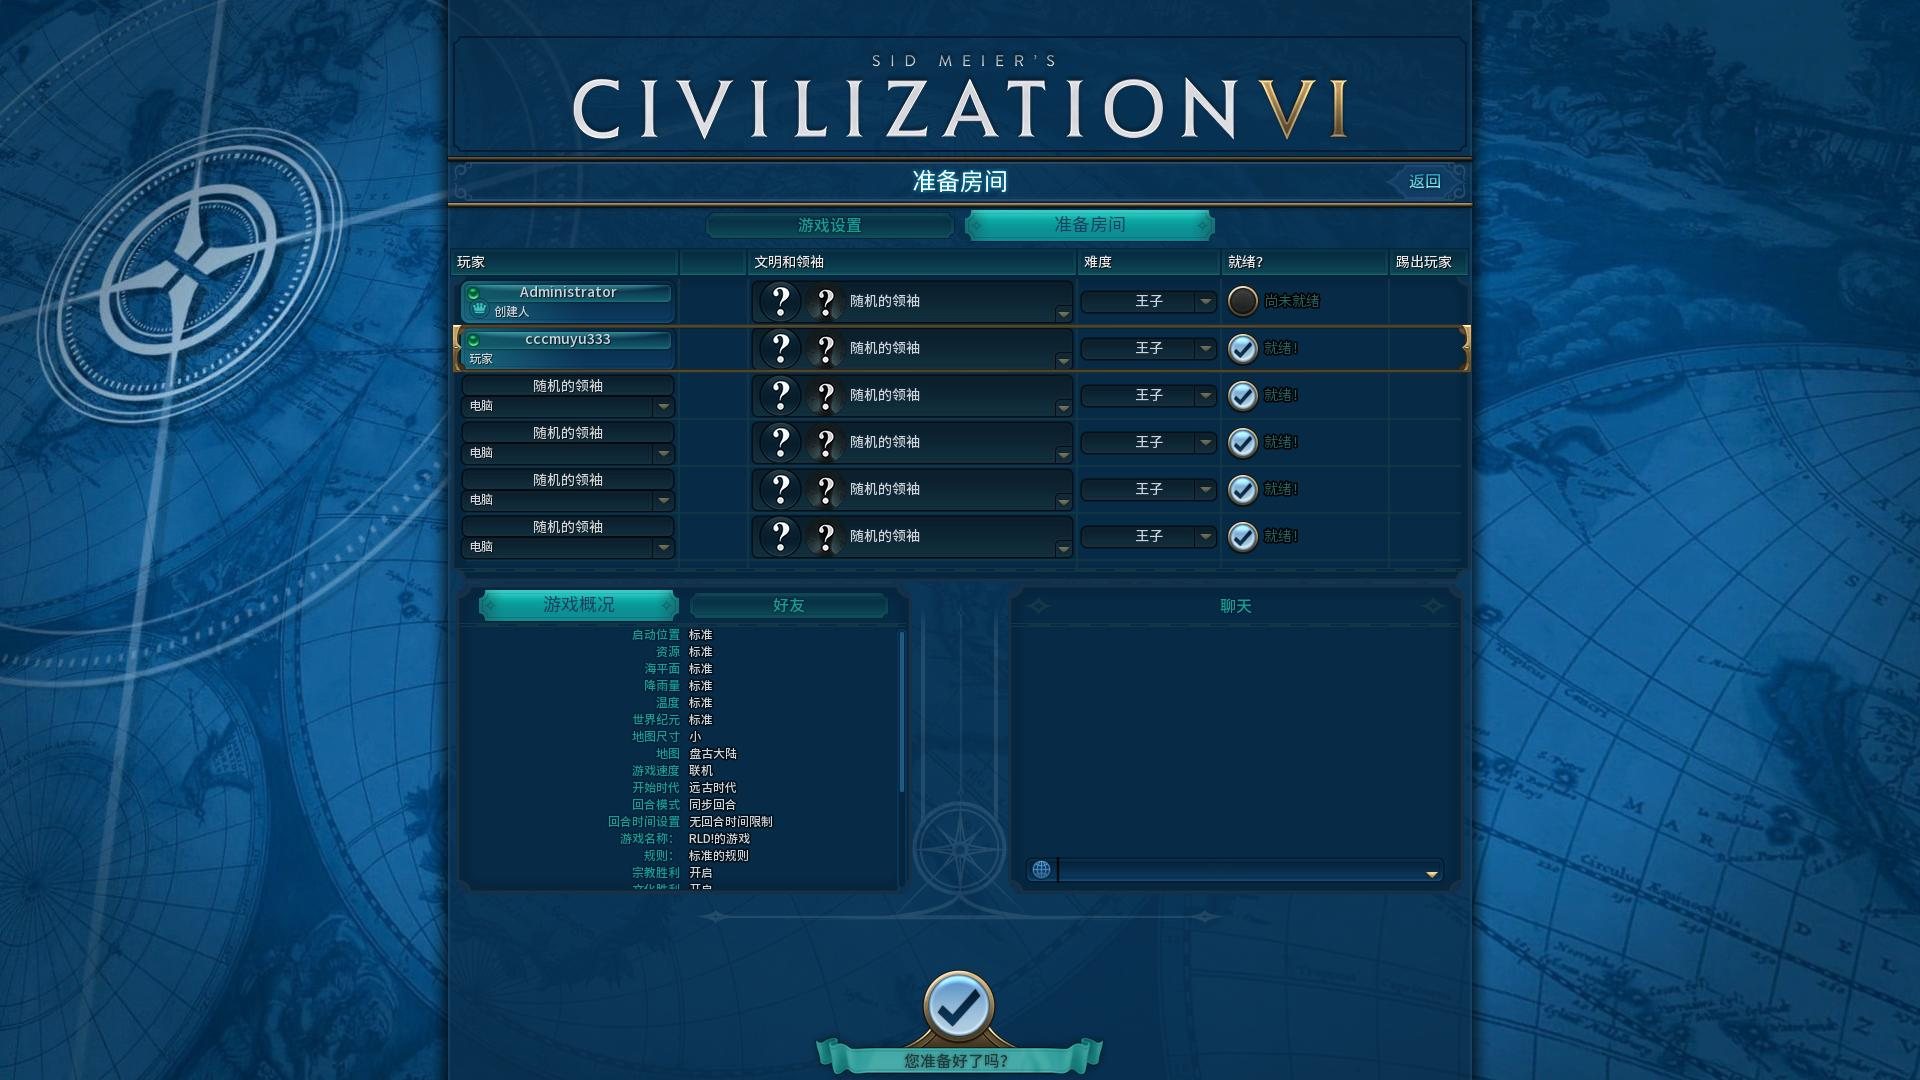 CivilizationVI 2016-10-21 15-10-39-51.jpg